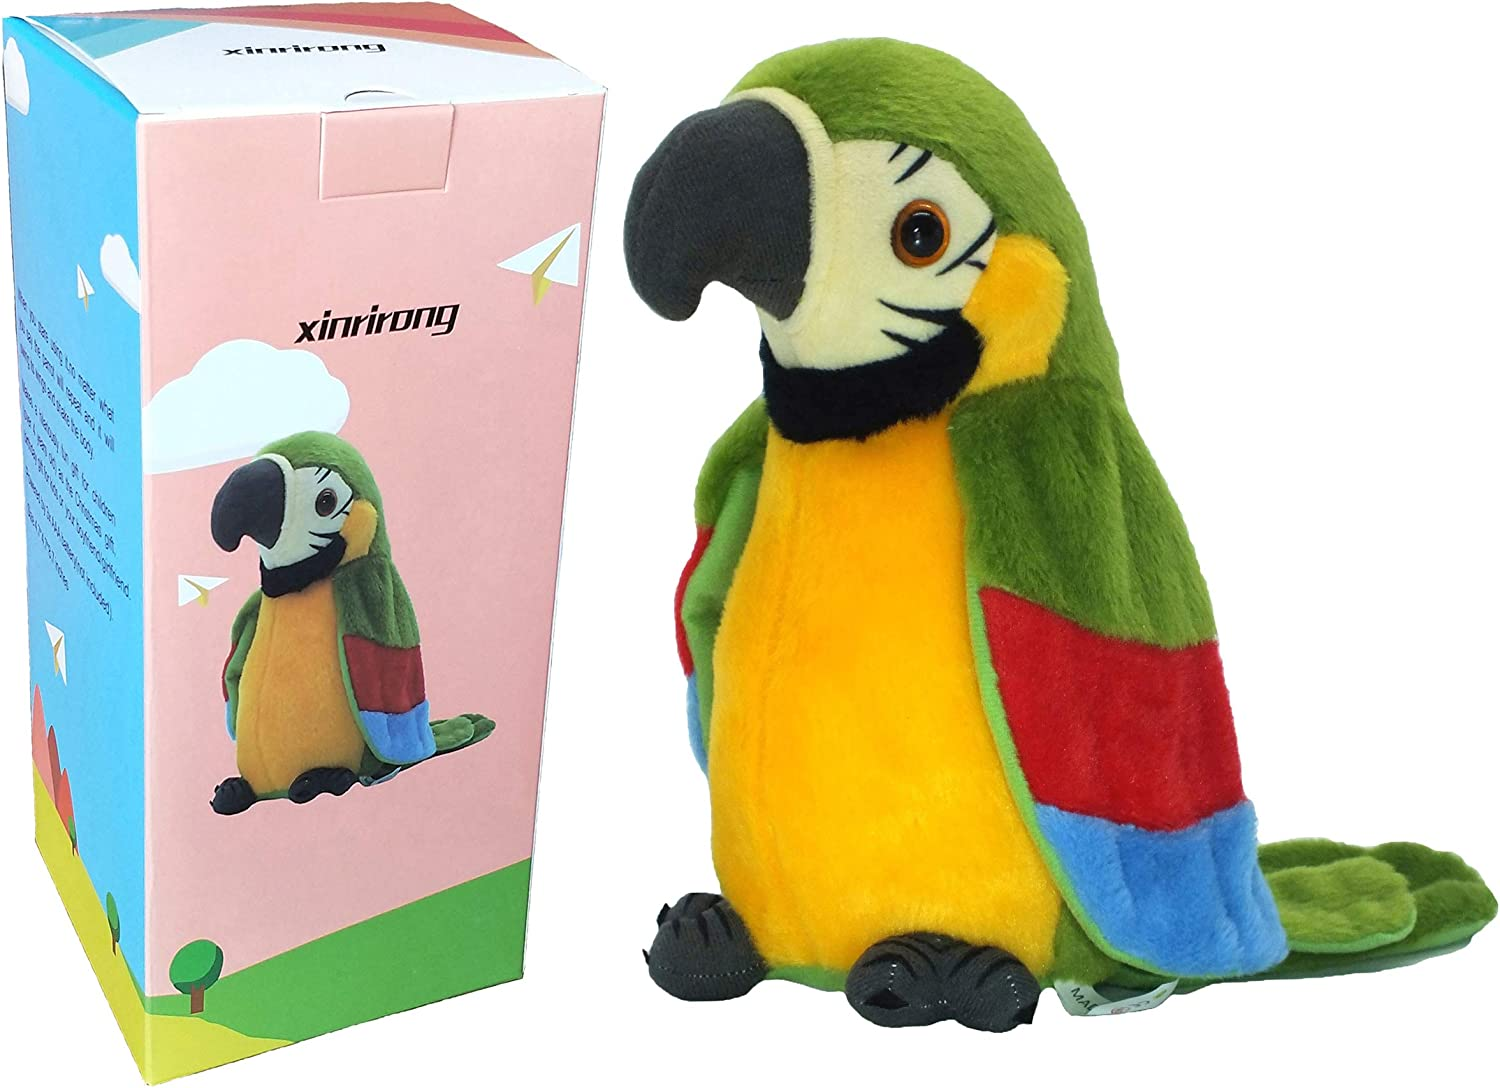 Talking Parrot Toy Repeats What You Say Kids Toys Education Funny Gift